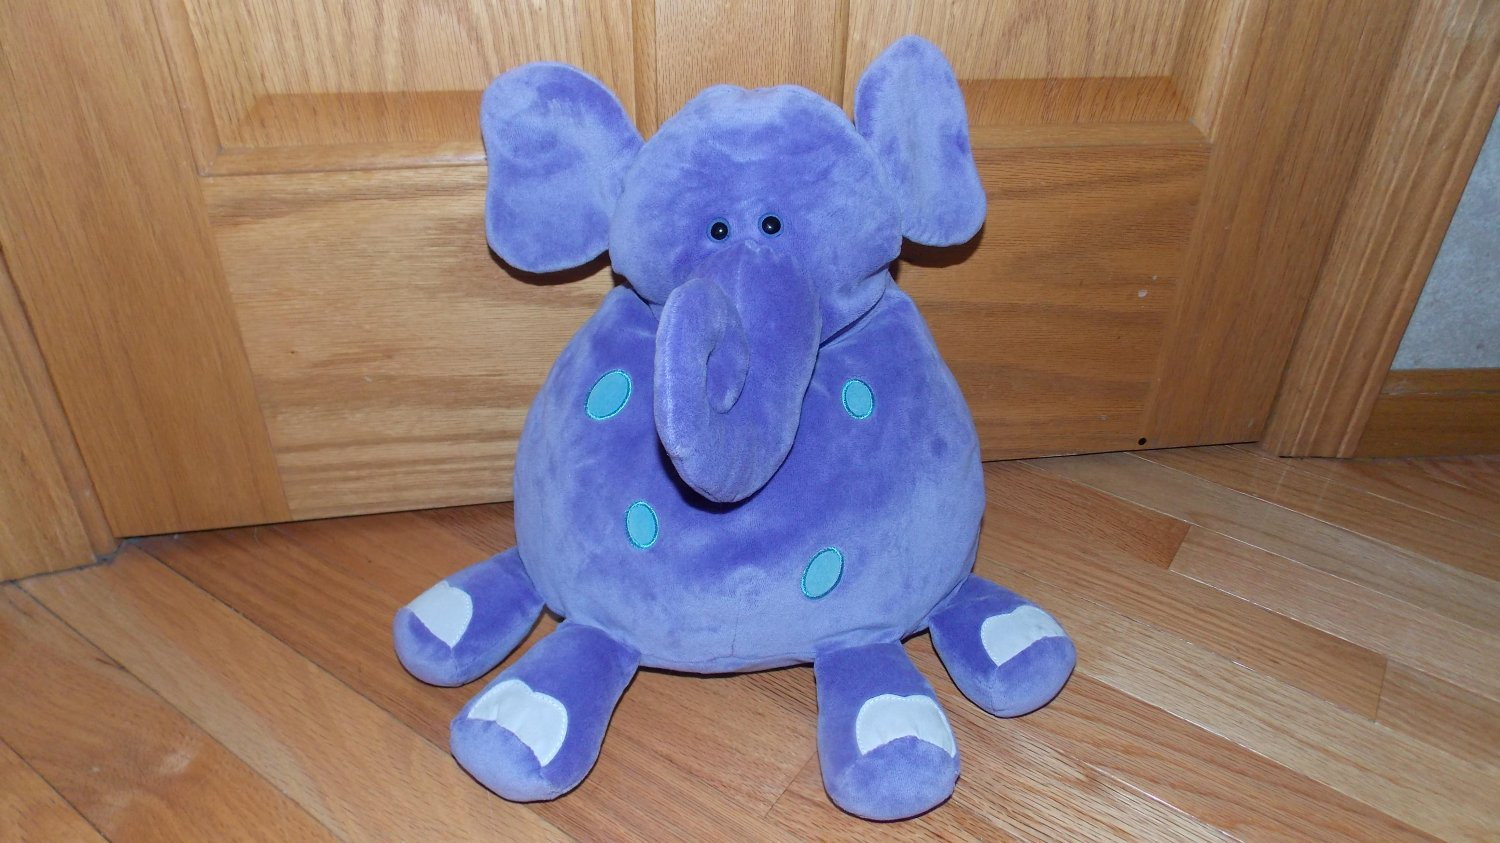 Animal Pillows Toys R Us : Animal Alley Toys R Us Purple Plush Elephant Blue Spots Front Feet White Nails Toy Pillow